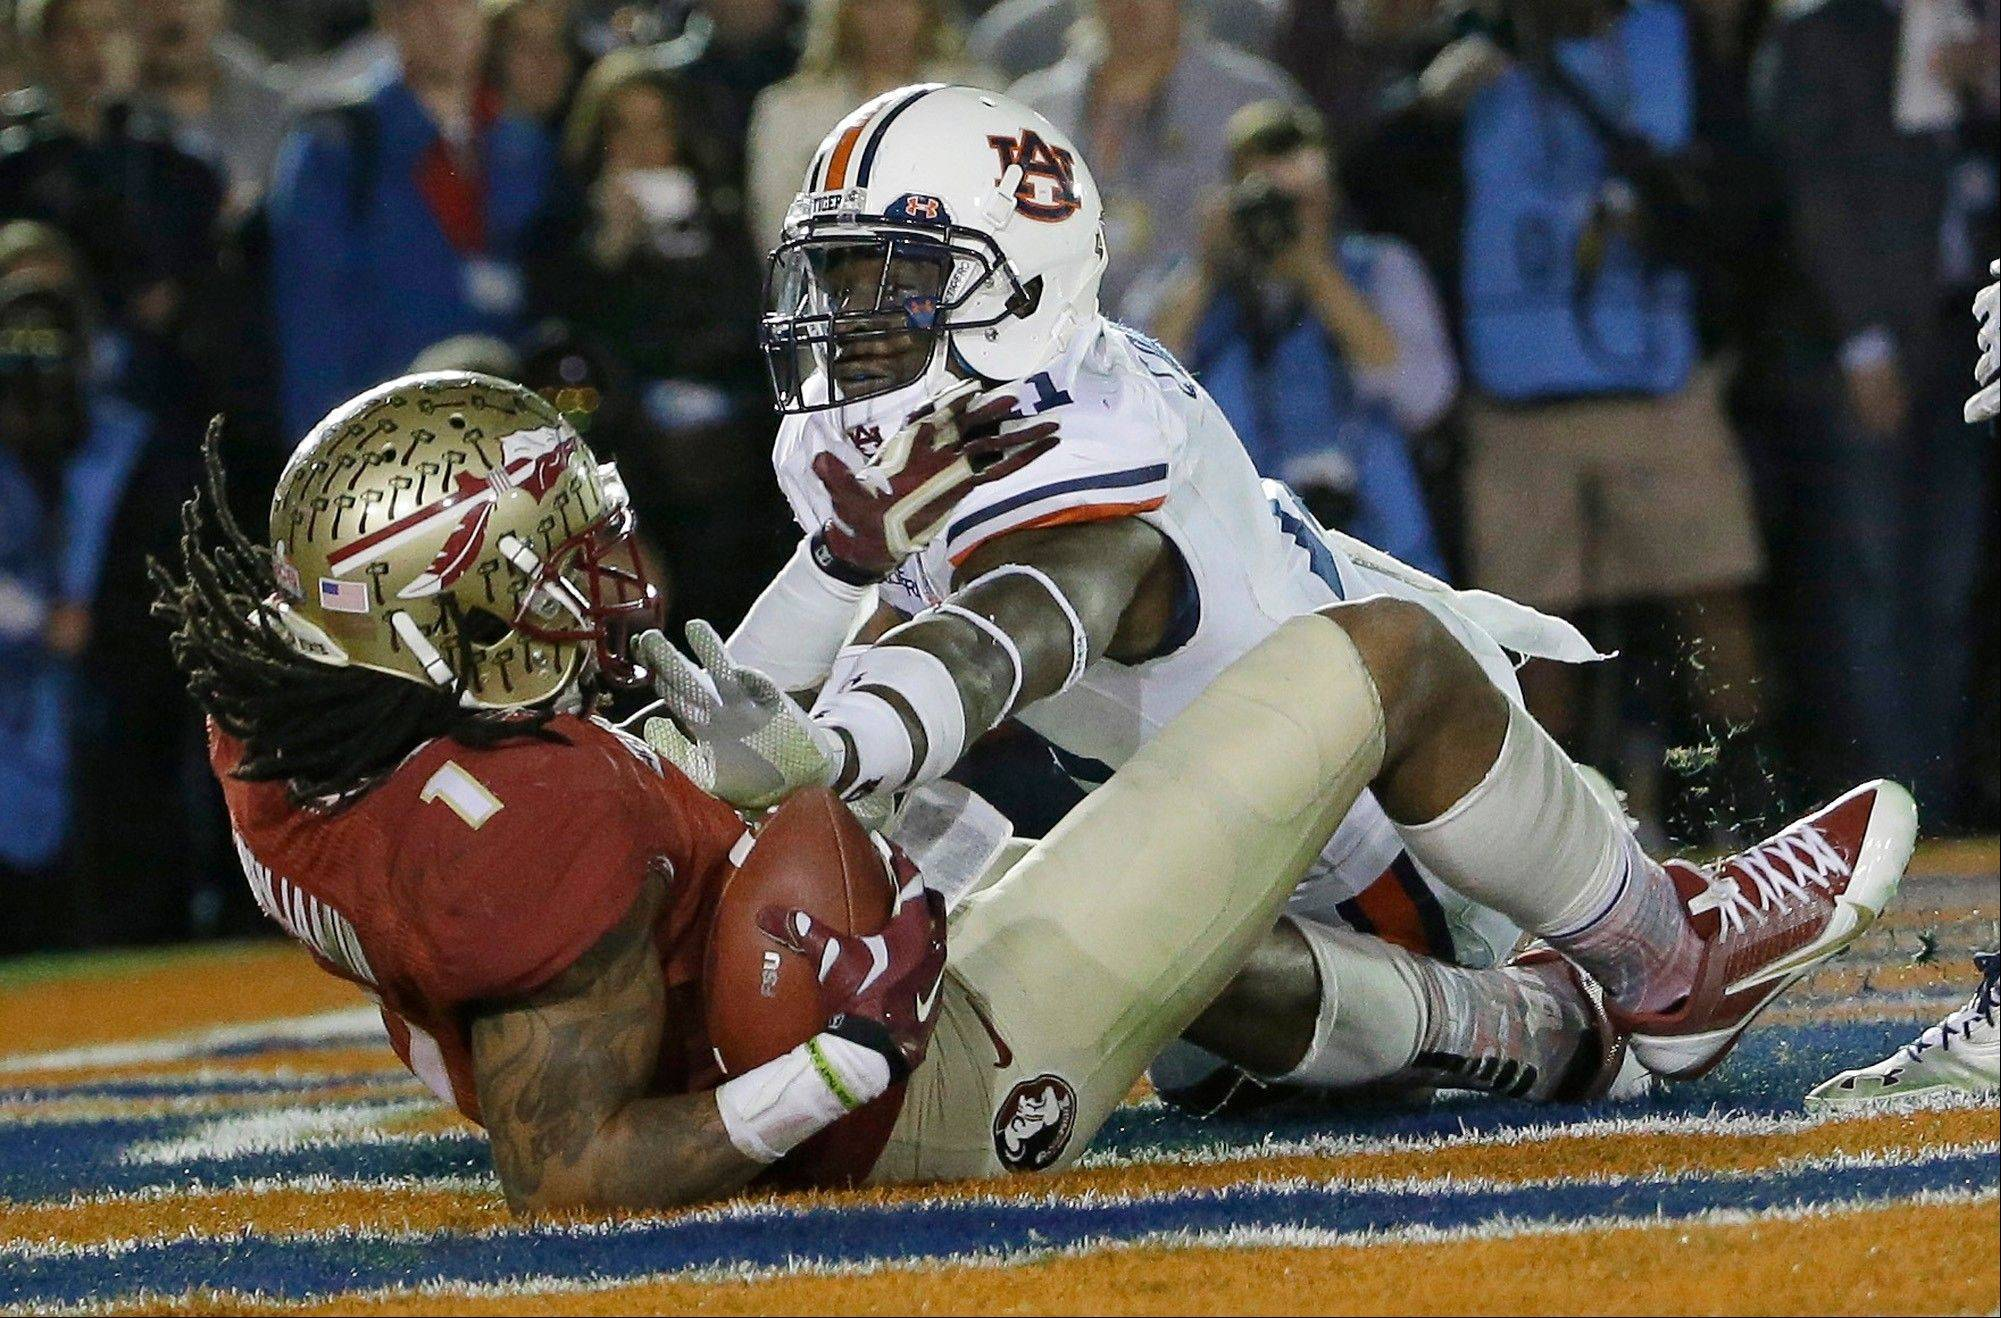 Florida State's Kelvin Benjamin catches a touchdown pass in front of Auburn's Chris Davis during the second half of the NCAA BCS National Championship college football game Monday, Jan. 6, 2014, in Pasadena, Calif.